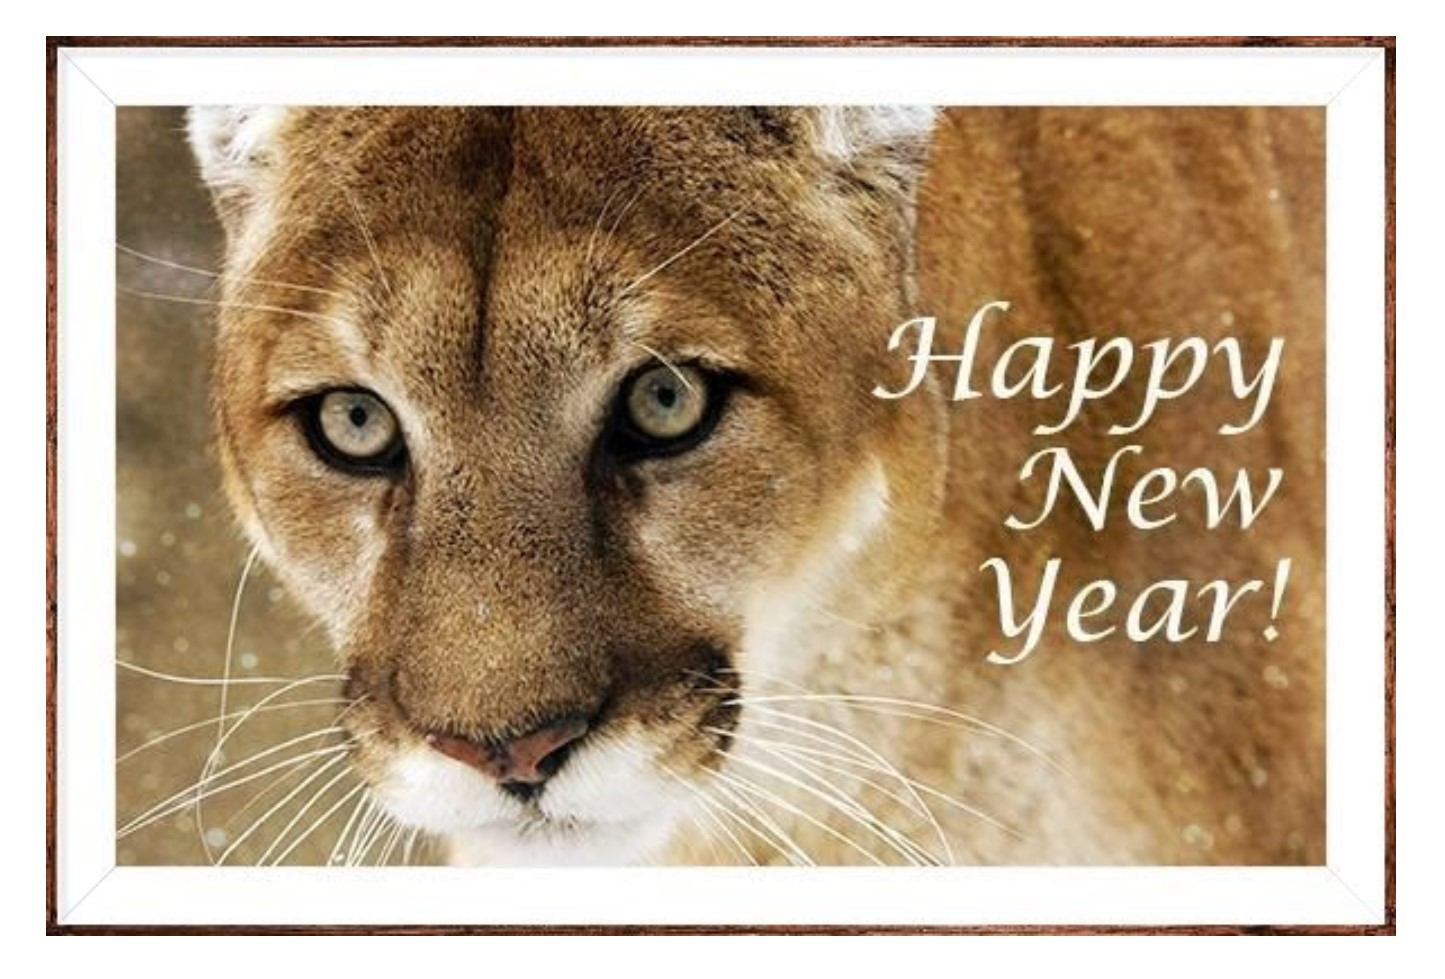 Cougar photo - Happy New Year